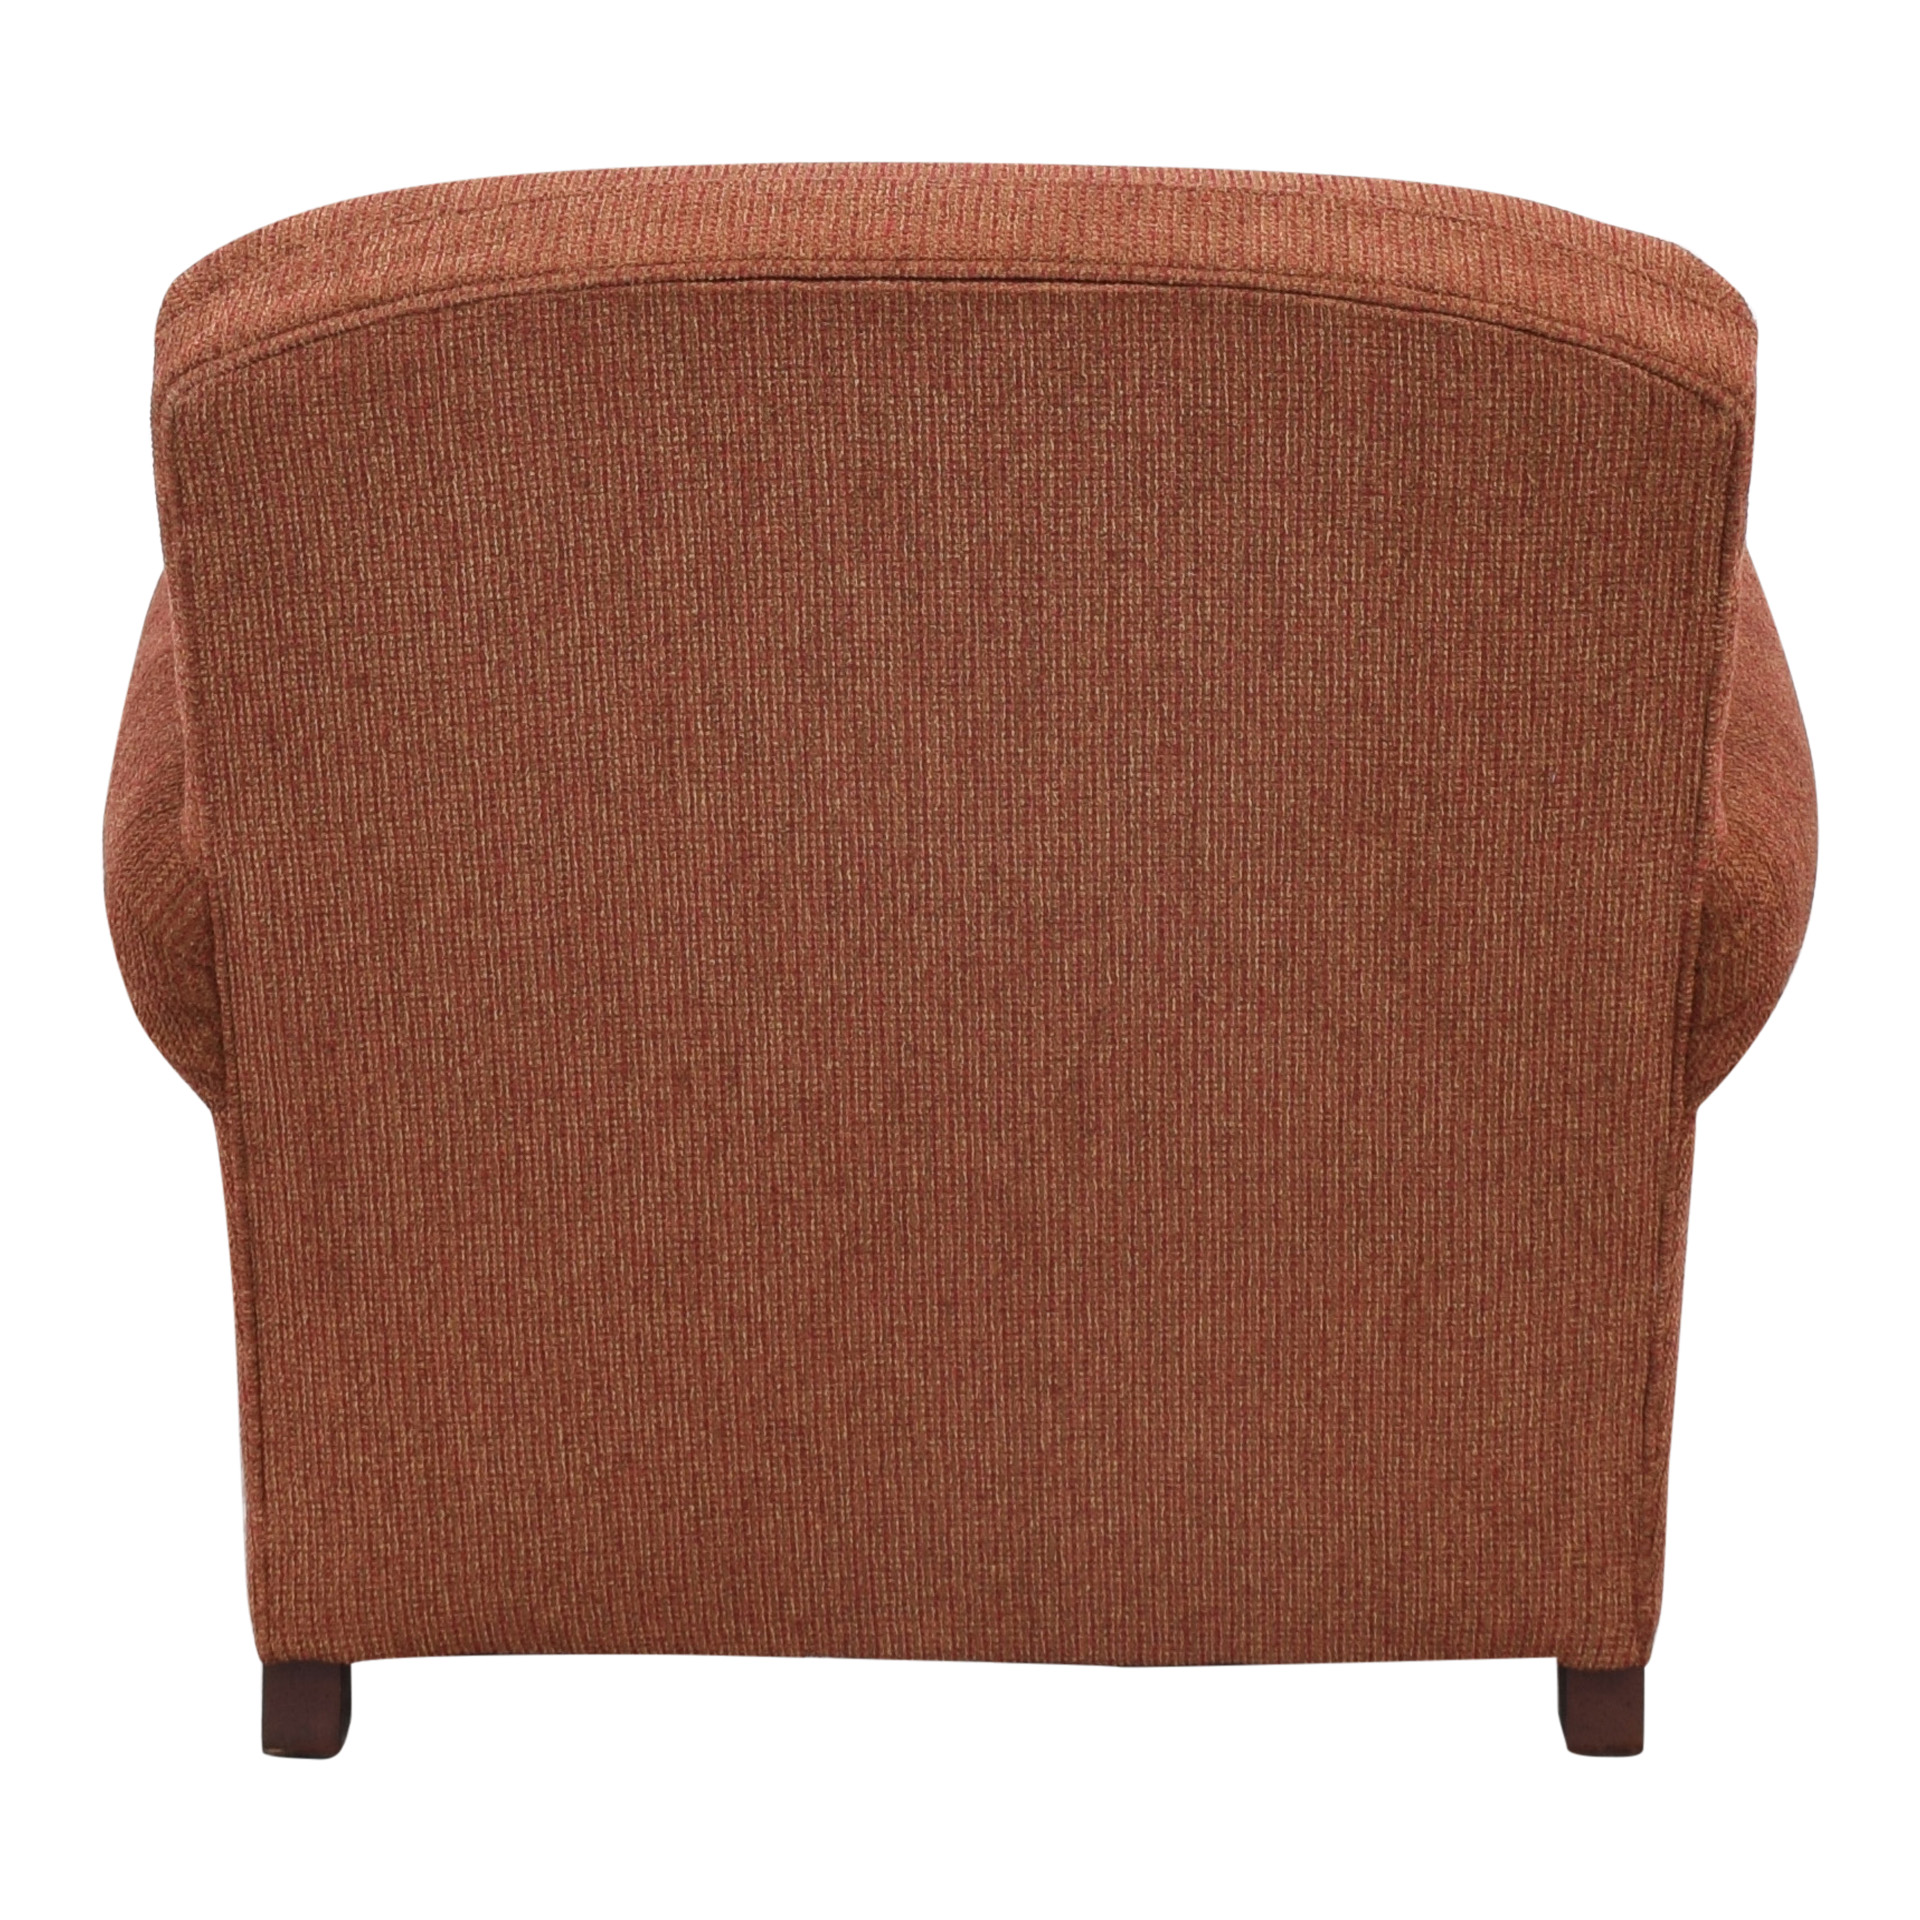 shop Crate & Barrel by Mitchell Gold Armchair Crate & Barrel Accent Chairs